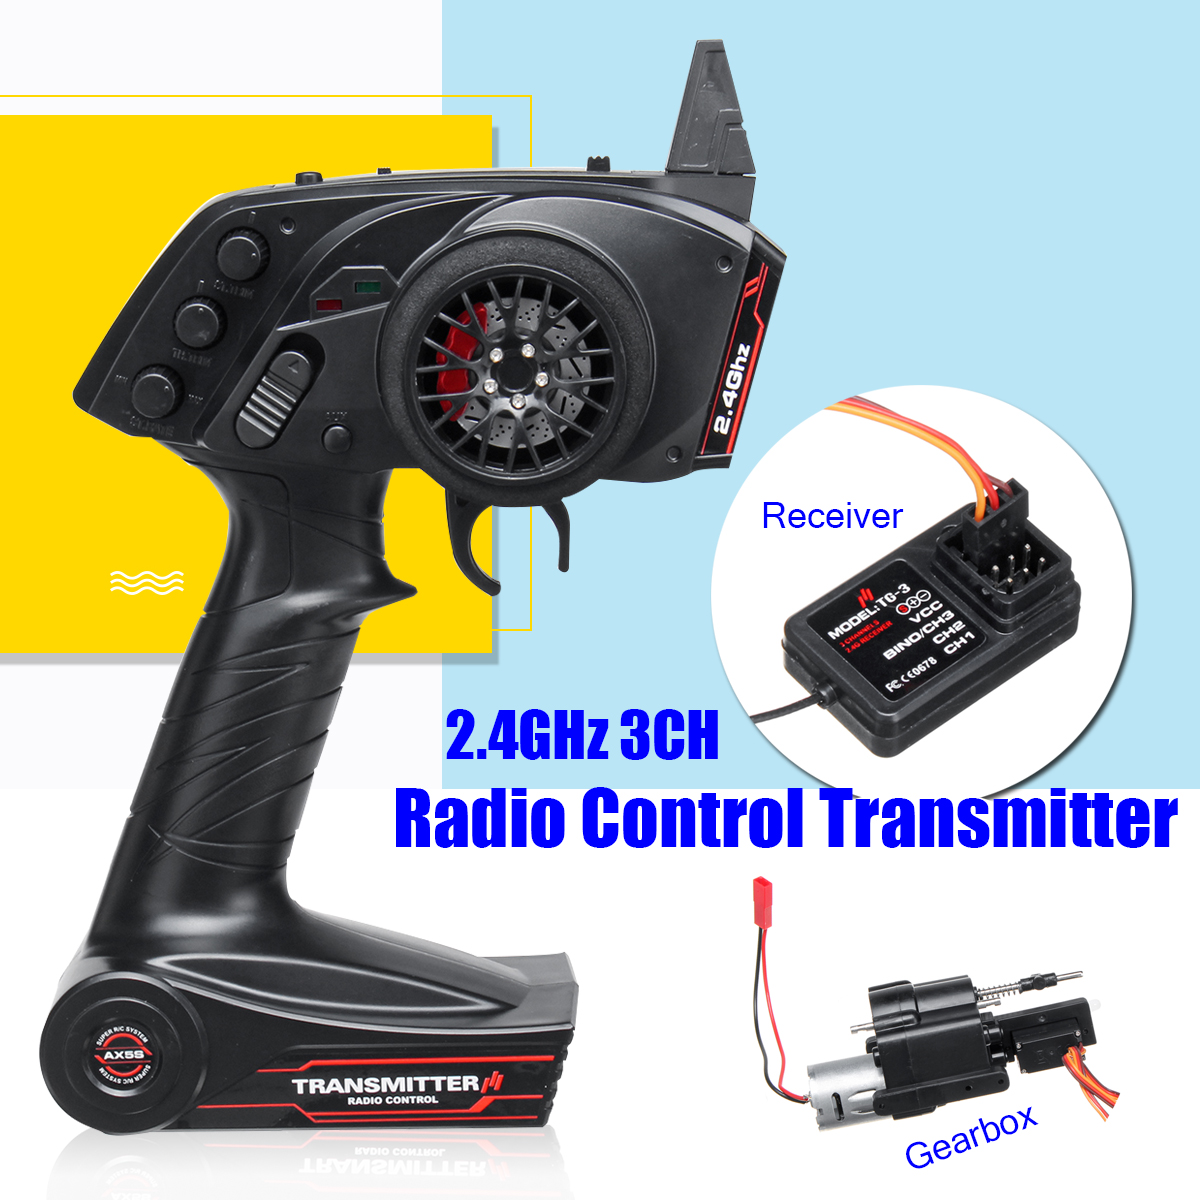 Speed Change Gear Box 3CH Radio Transmitter For WPL B1 B24 B16 C24 1/16 4WD 6WD Rc Car Super Active Throttle Limit Range